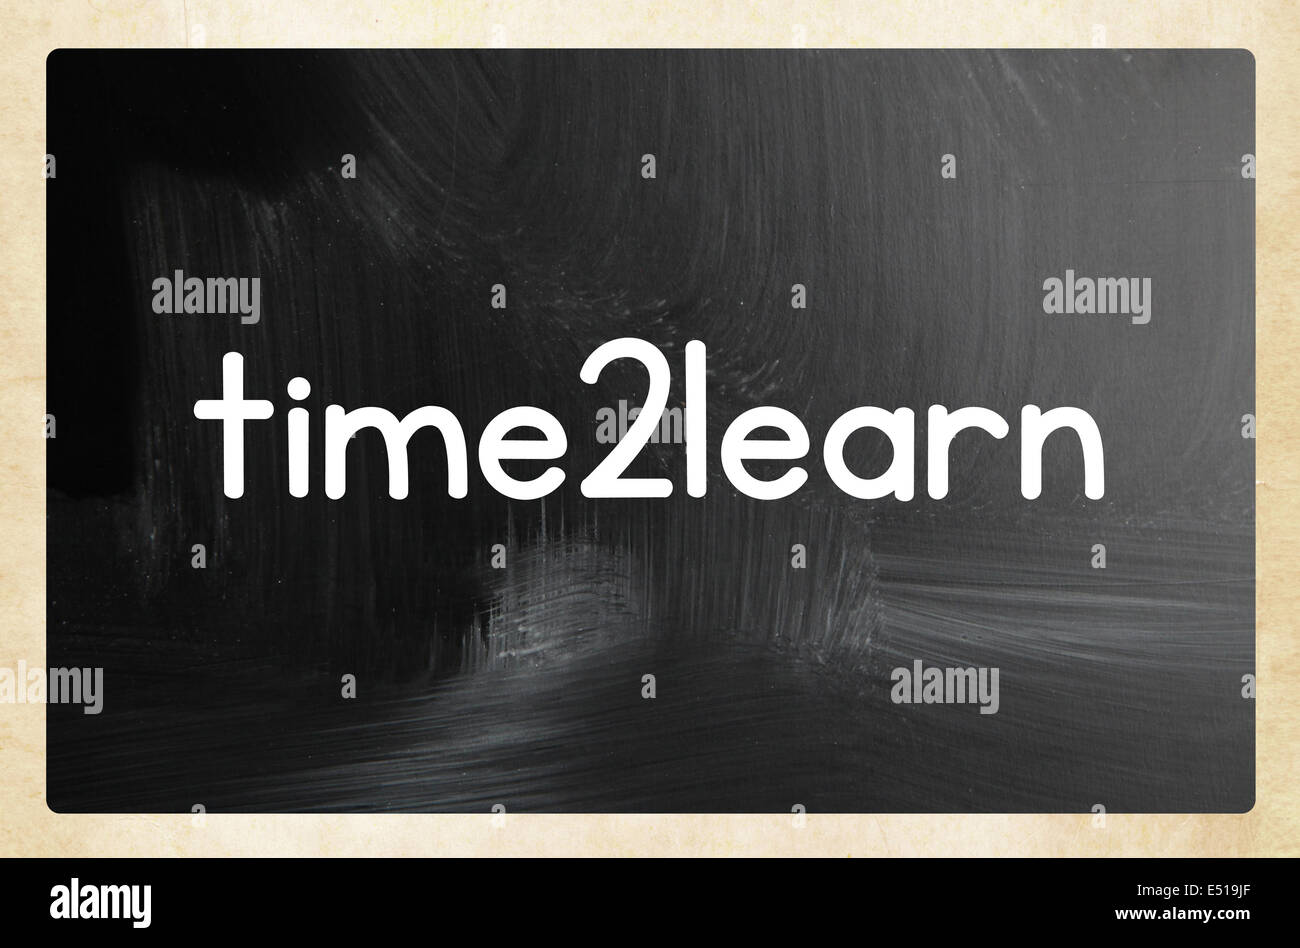 time2learn concept - Stock Image